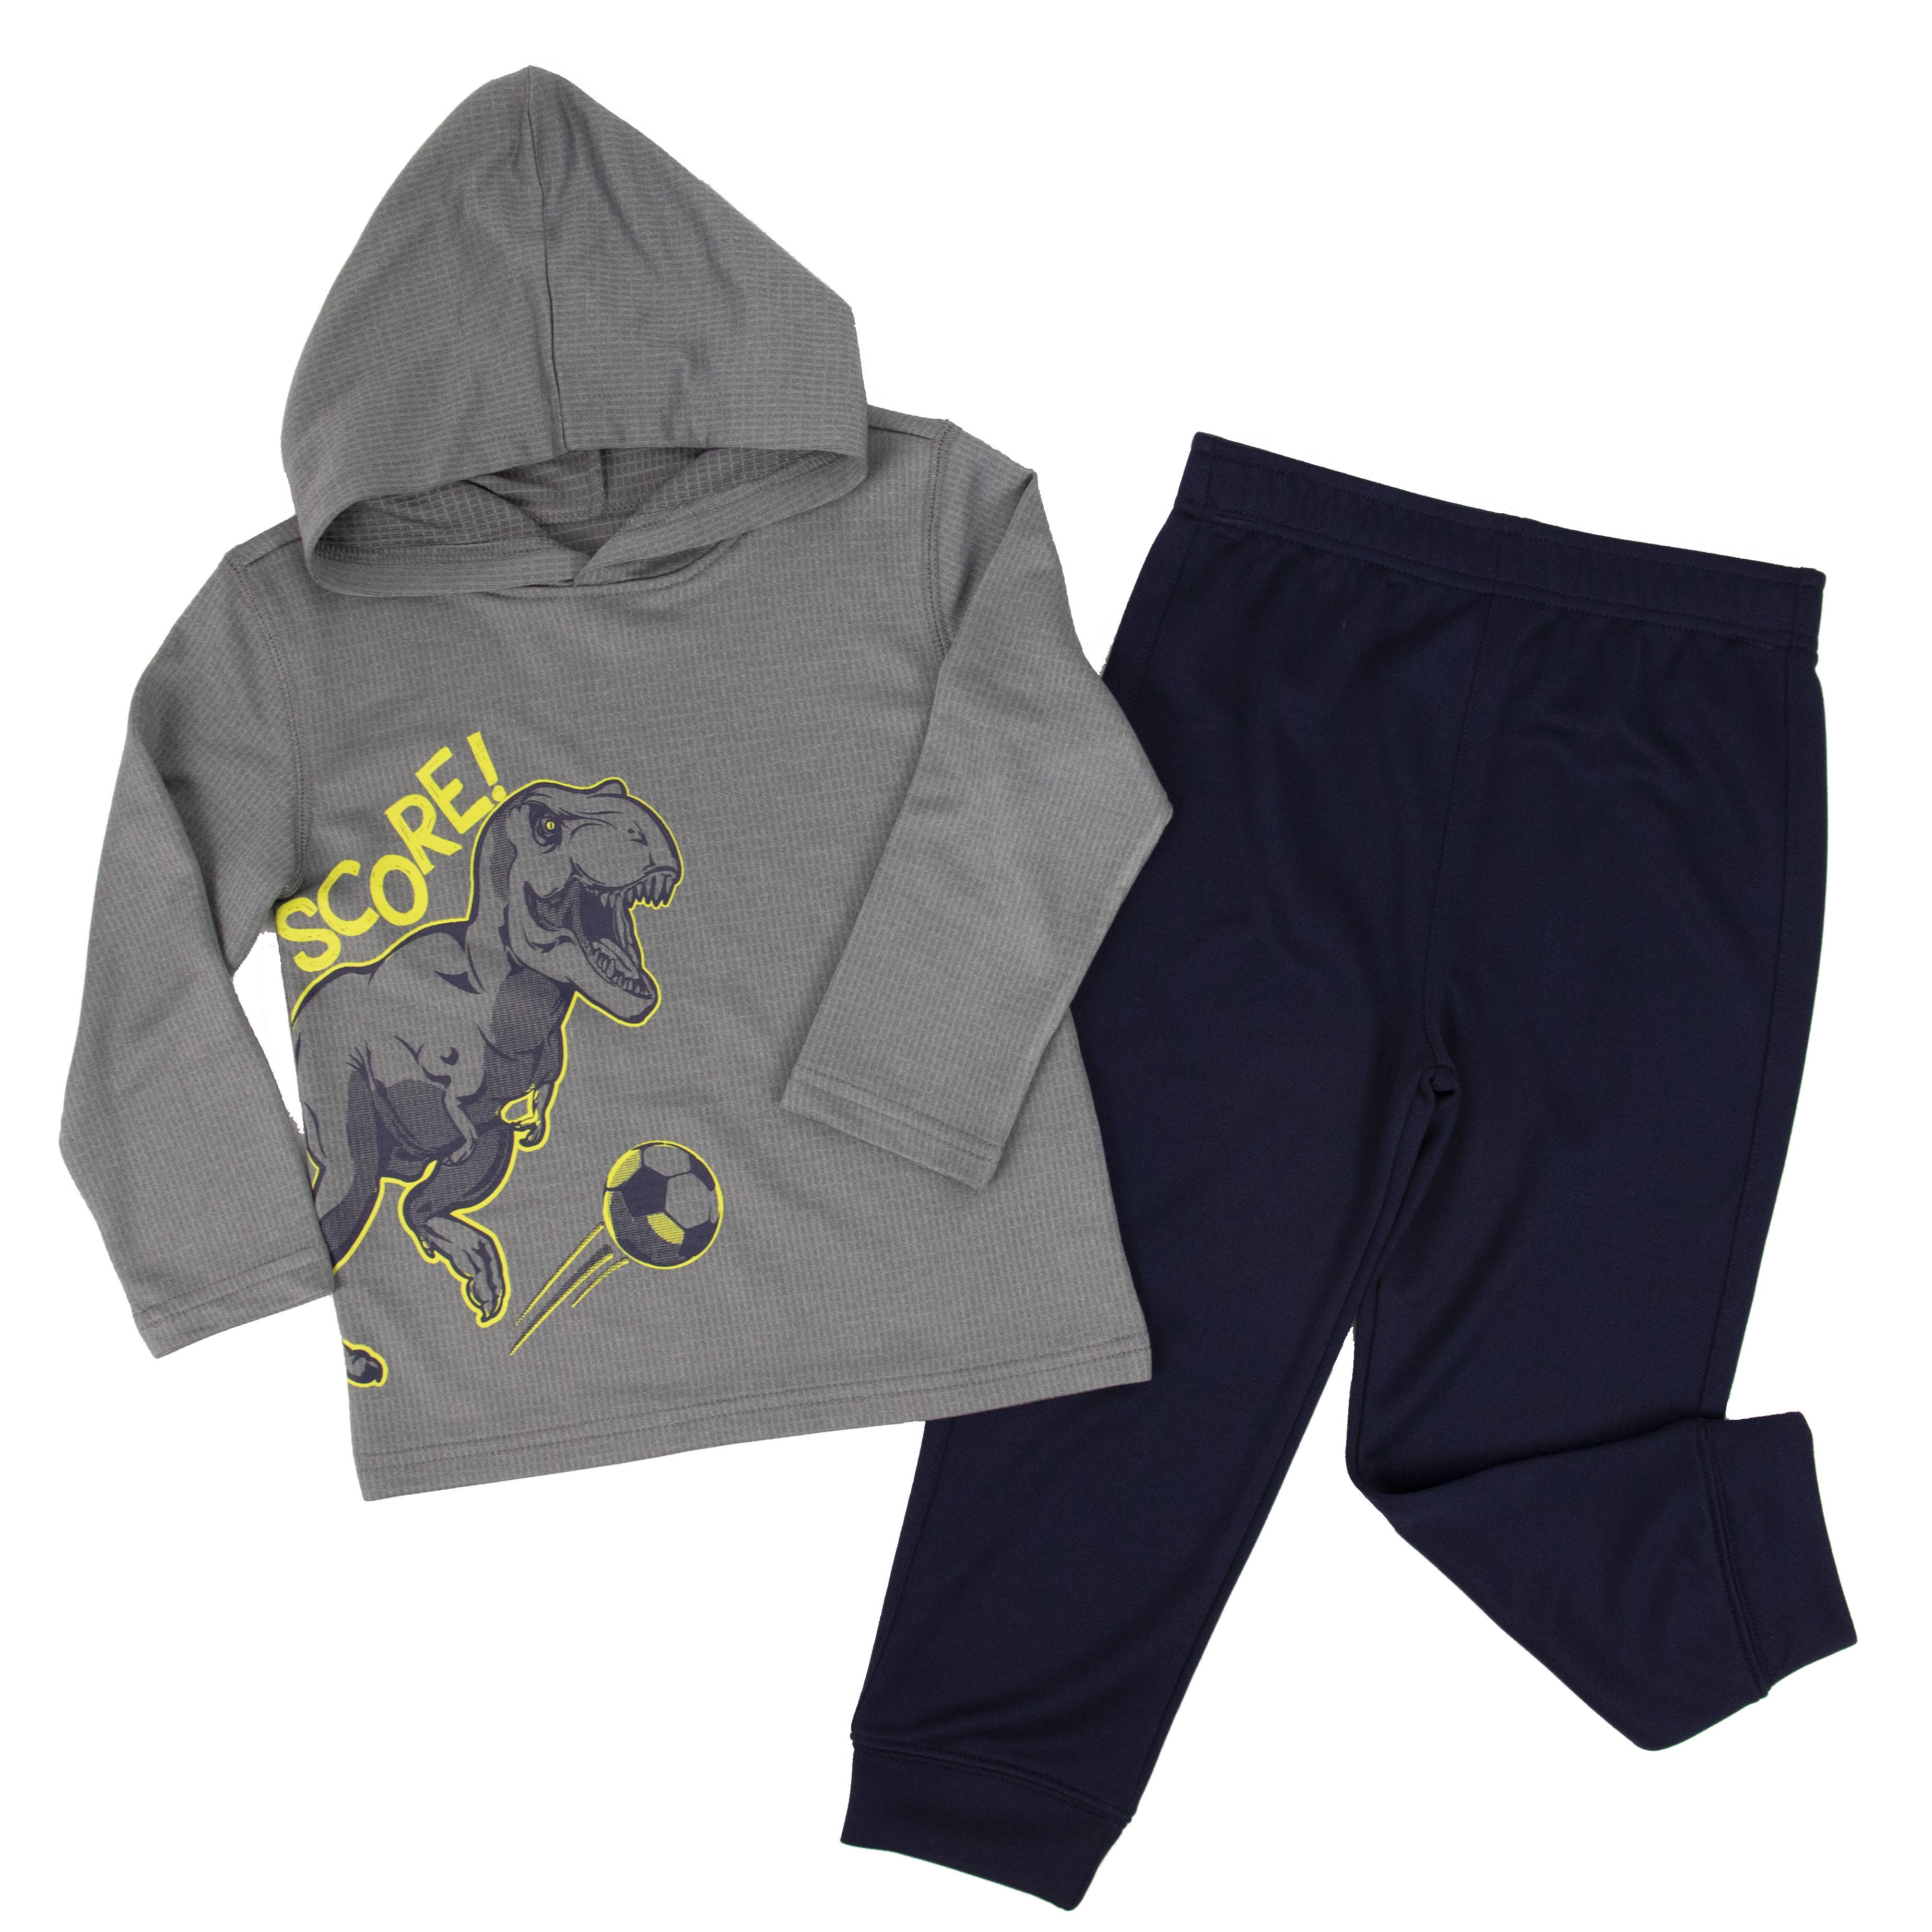 2020 Fall Baby Dinosaur Hoodie Shirts Pants Kids Sets Gray Outfit Children toddler Active Wear Print Clothes Boy